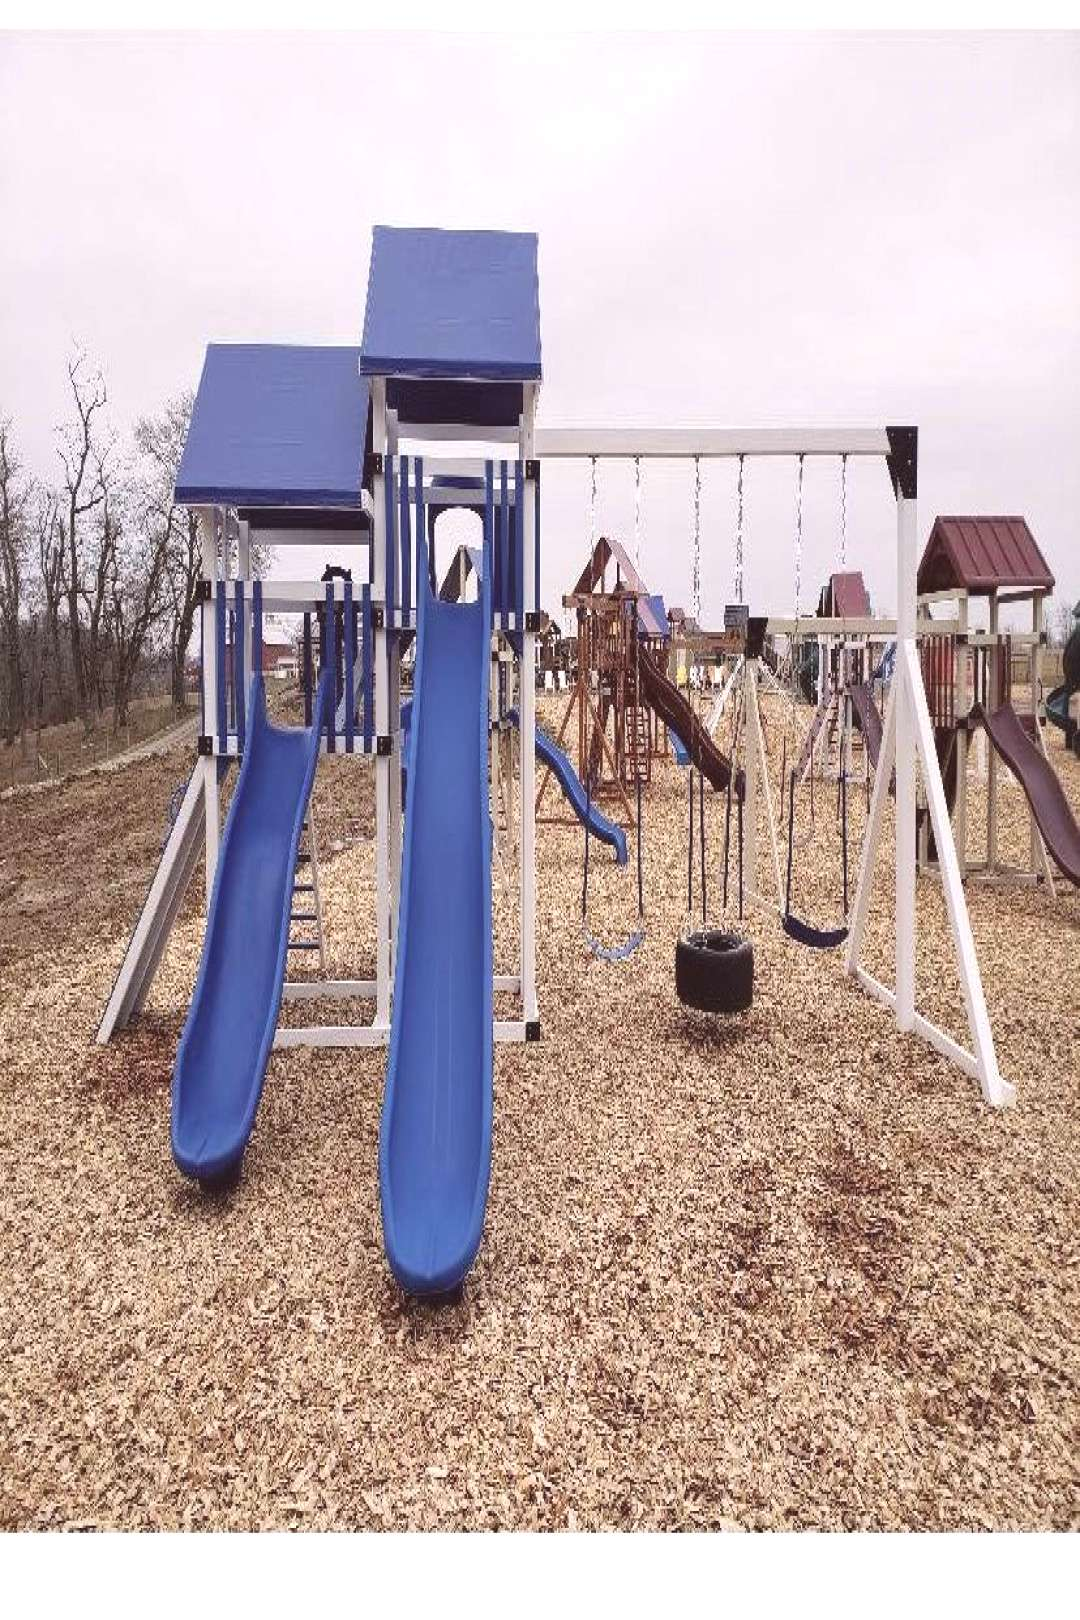 Vinyl Playset Vinyl and wood Playsets available in Northern WV and Southwest PA.